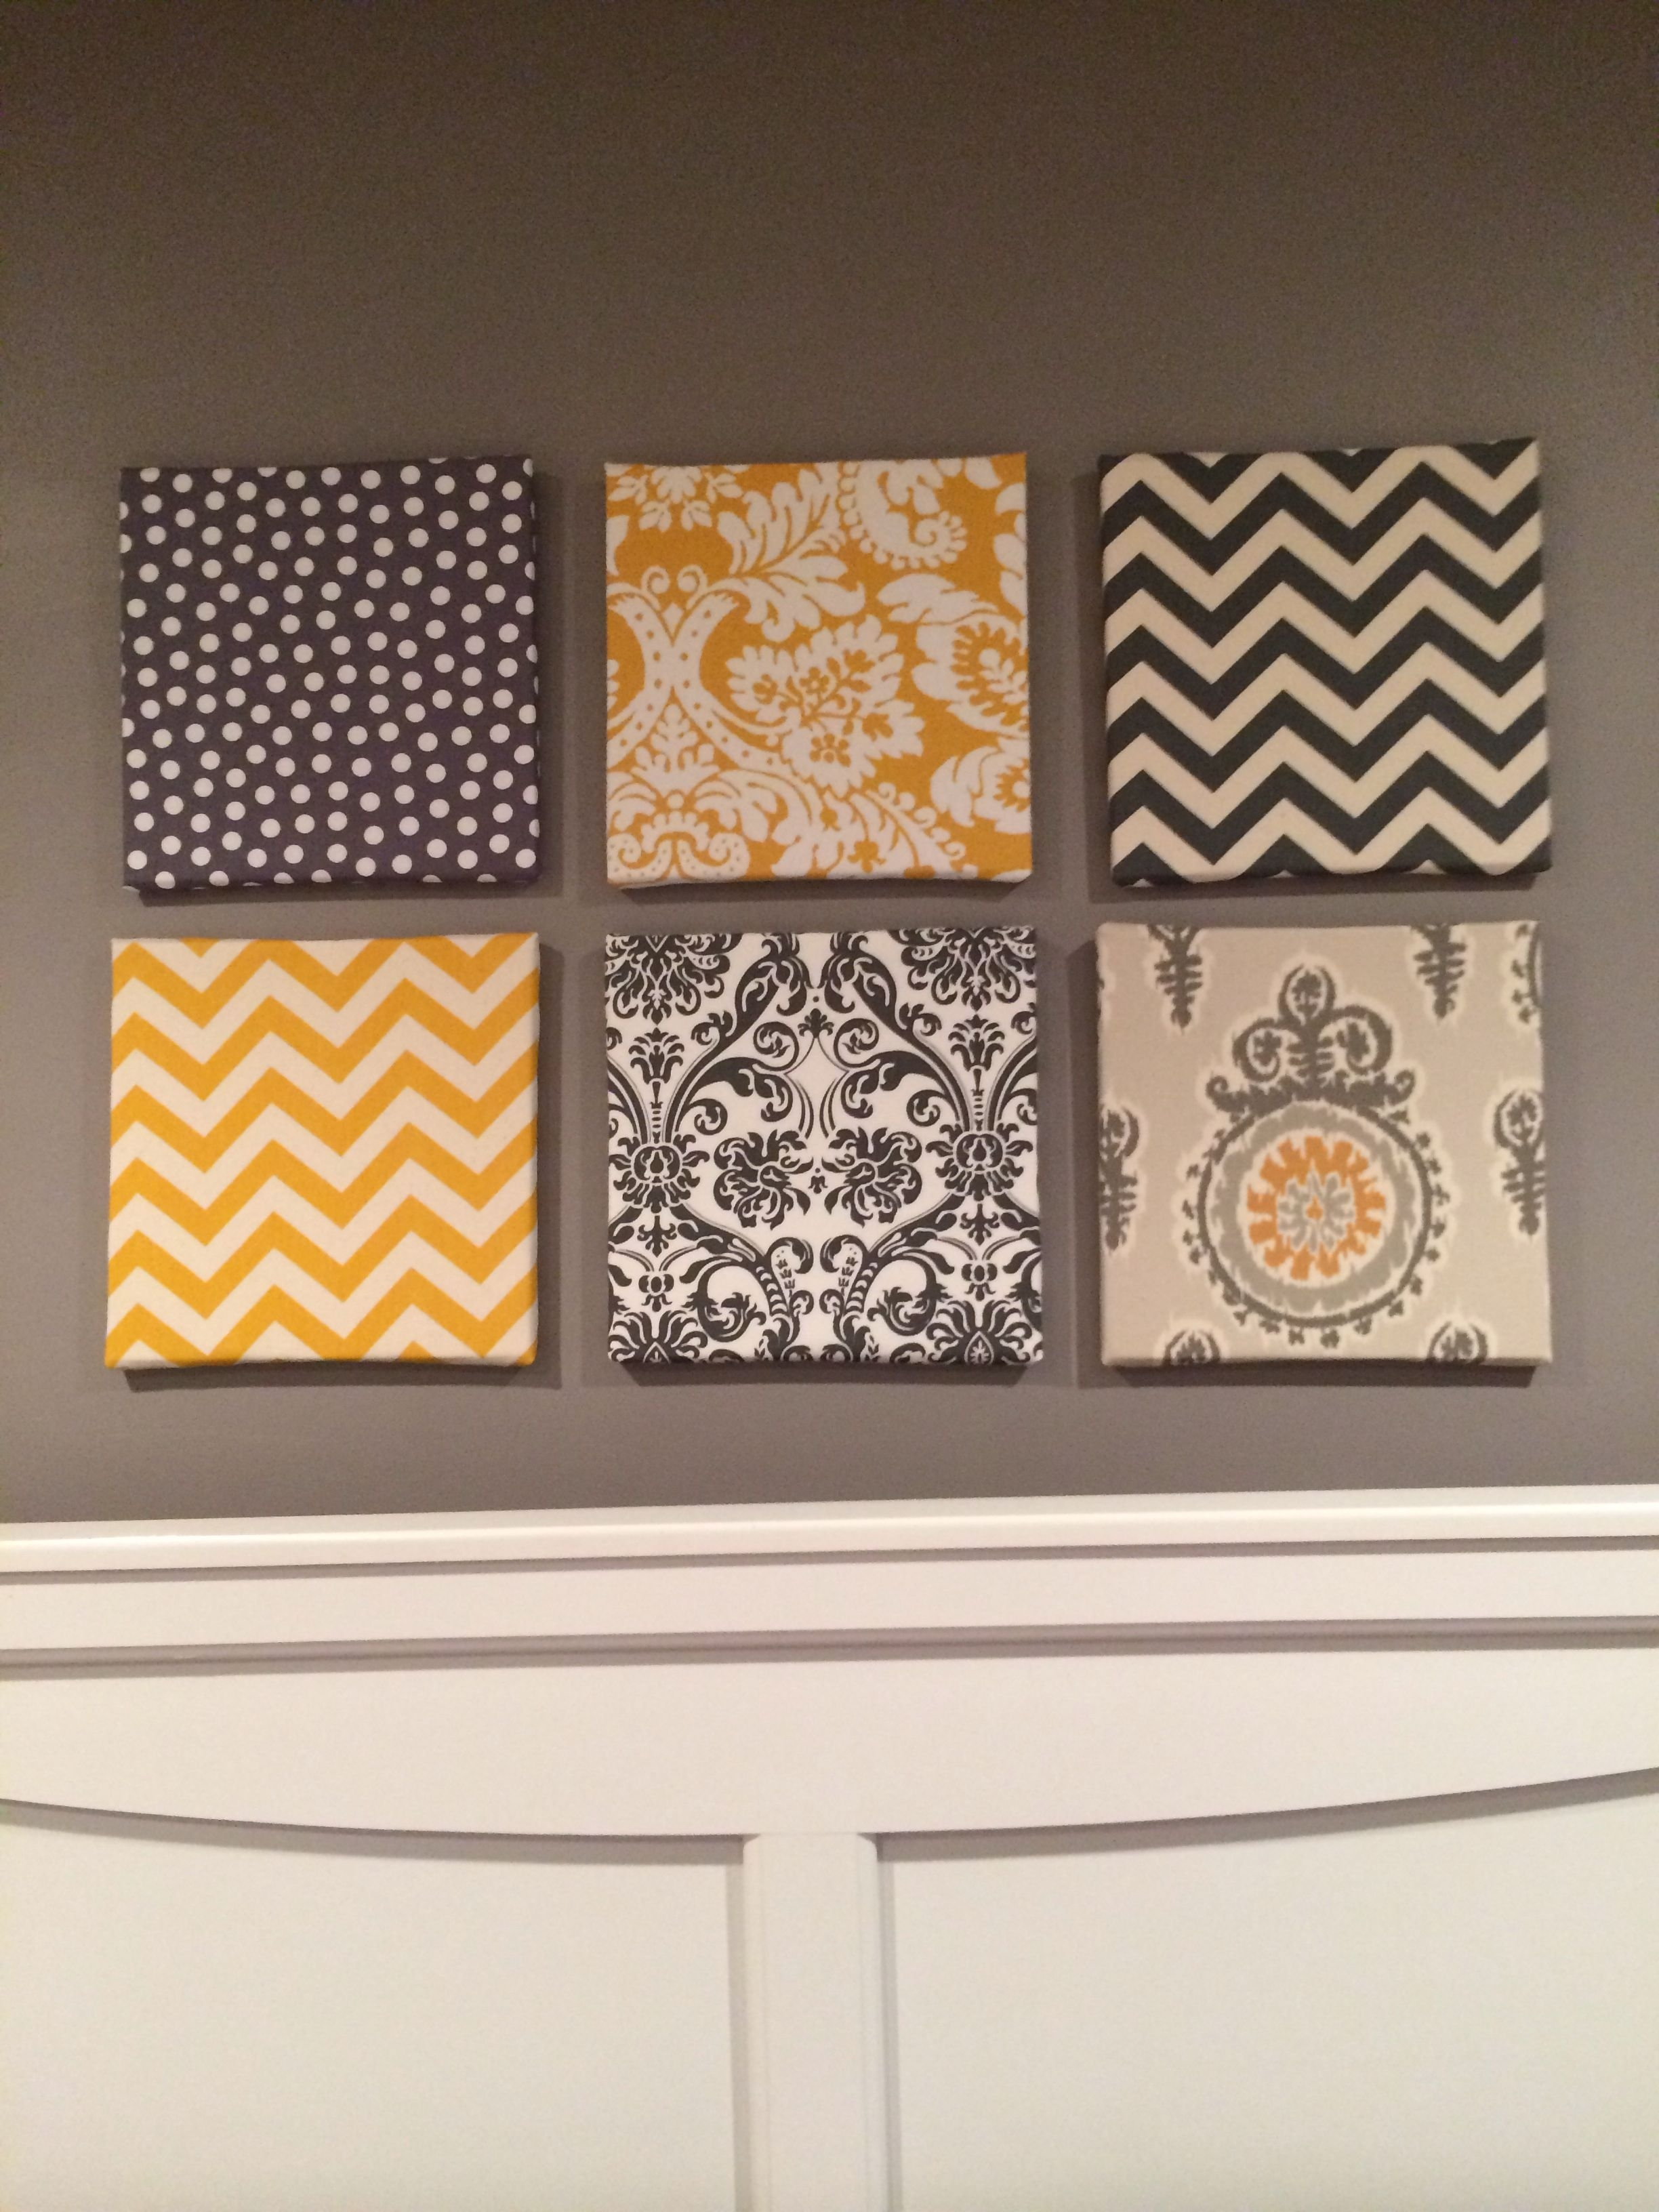 My Fabric Over Canvas Wall Art For My Gray And Yellow Themed Room With Most Recent Fabric Panel Wall Art With Embellishments (Gallery 15 of 15)